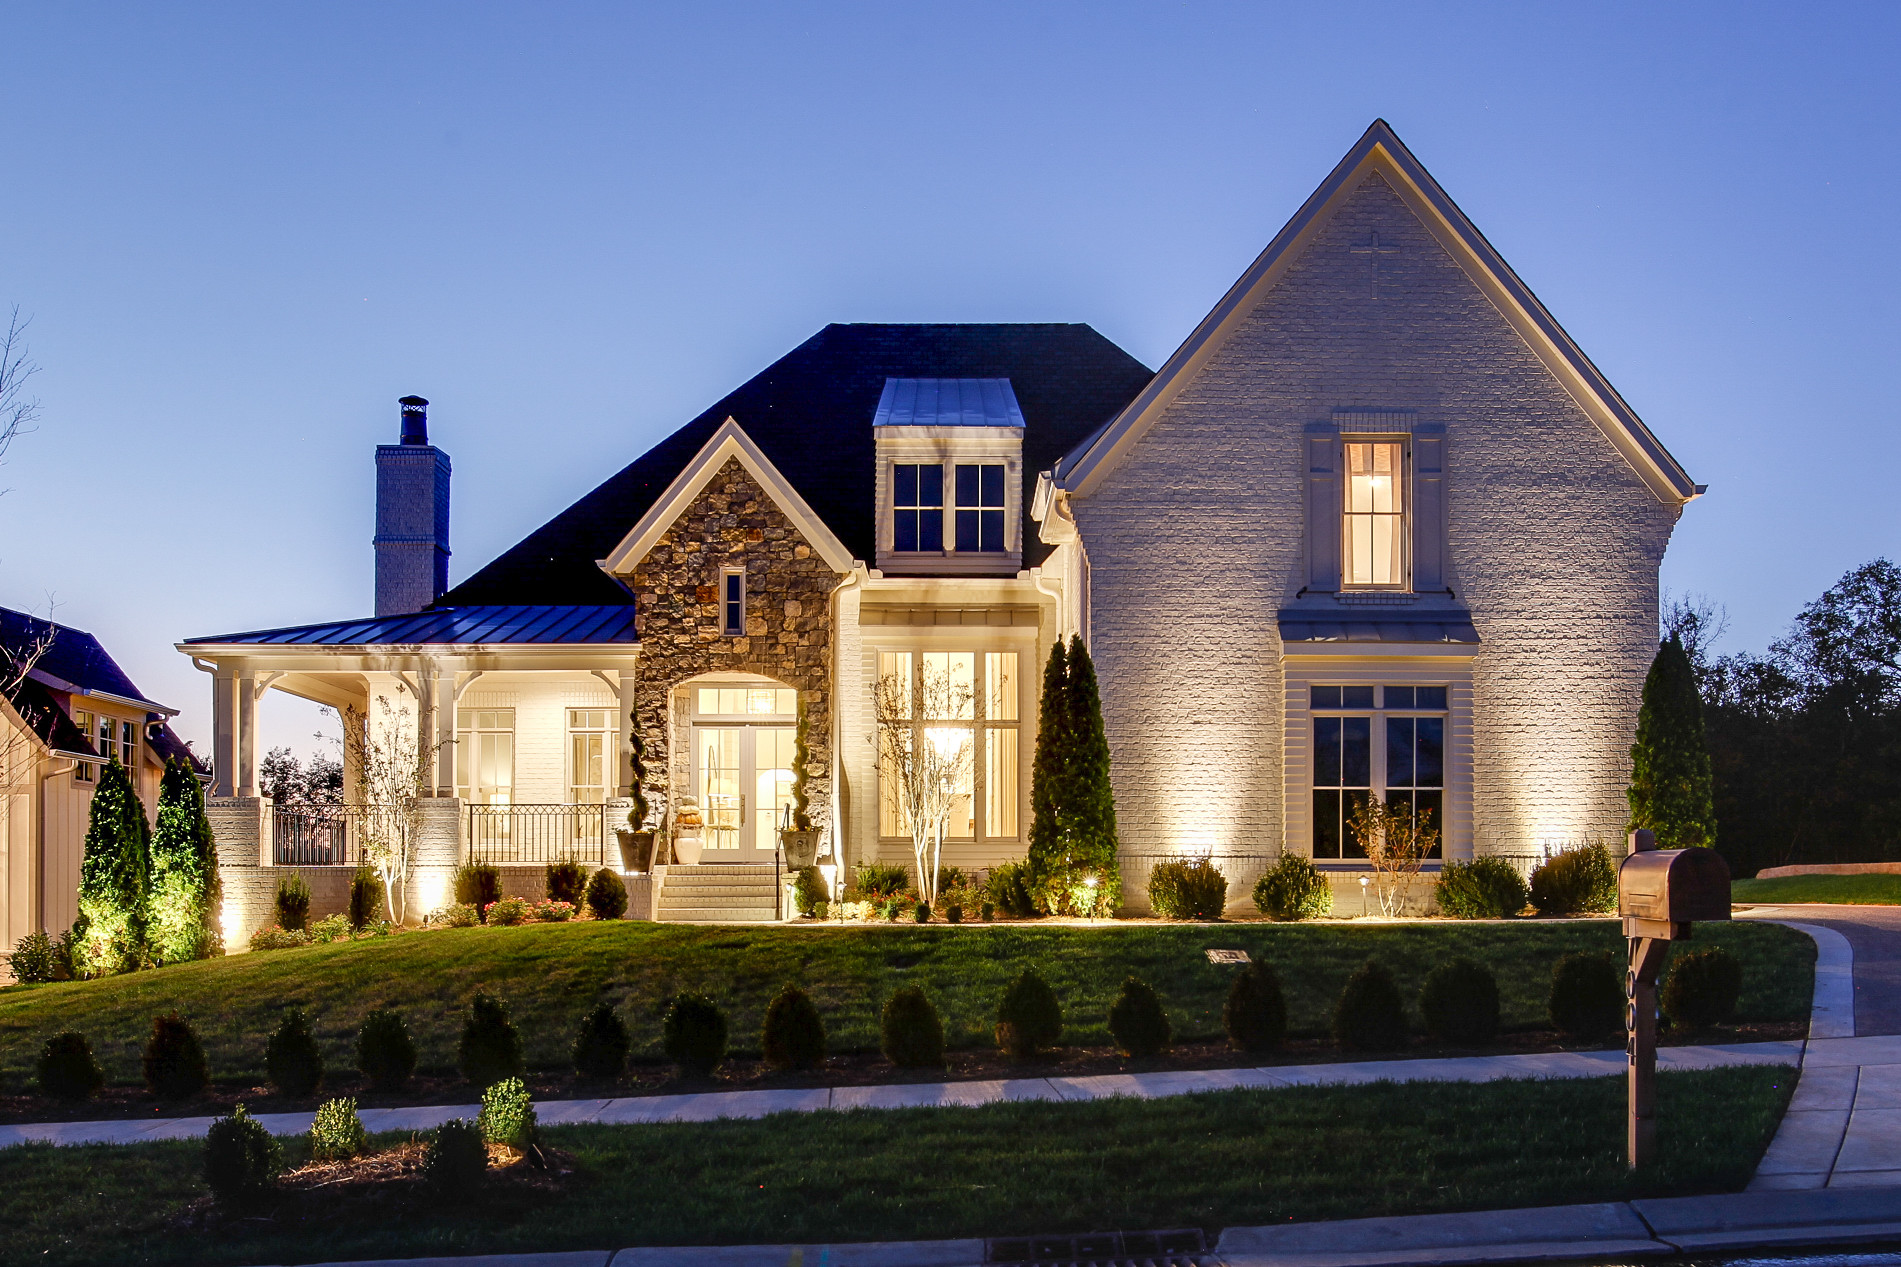 Custom homes Brentwood, TN, custom home design in Franklin and Arrington, home builder of new homes, new construction – custom home builder.